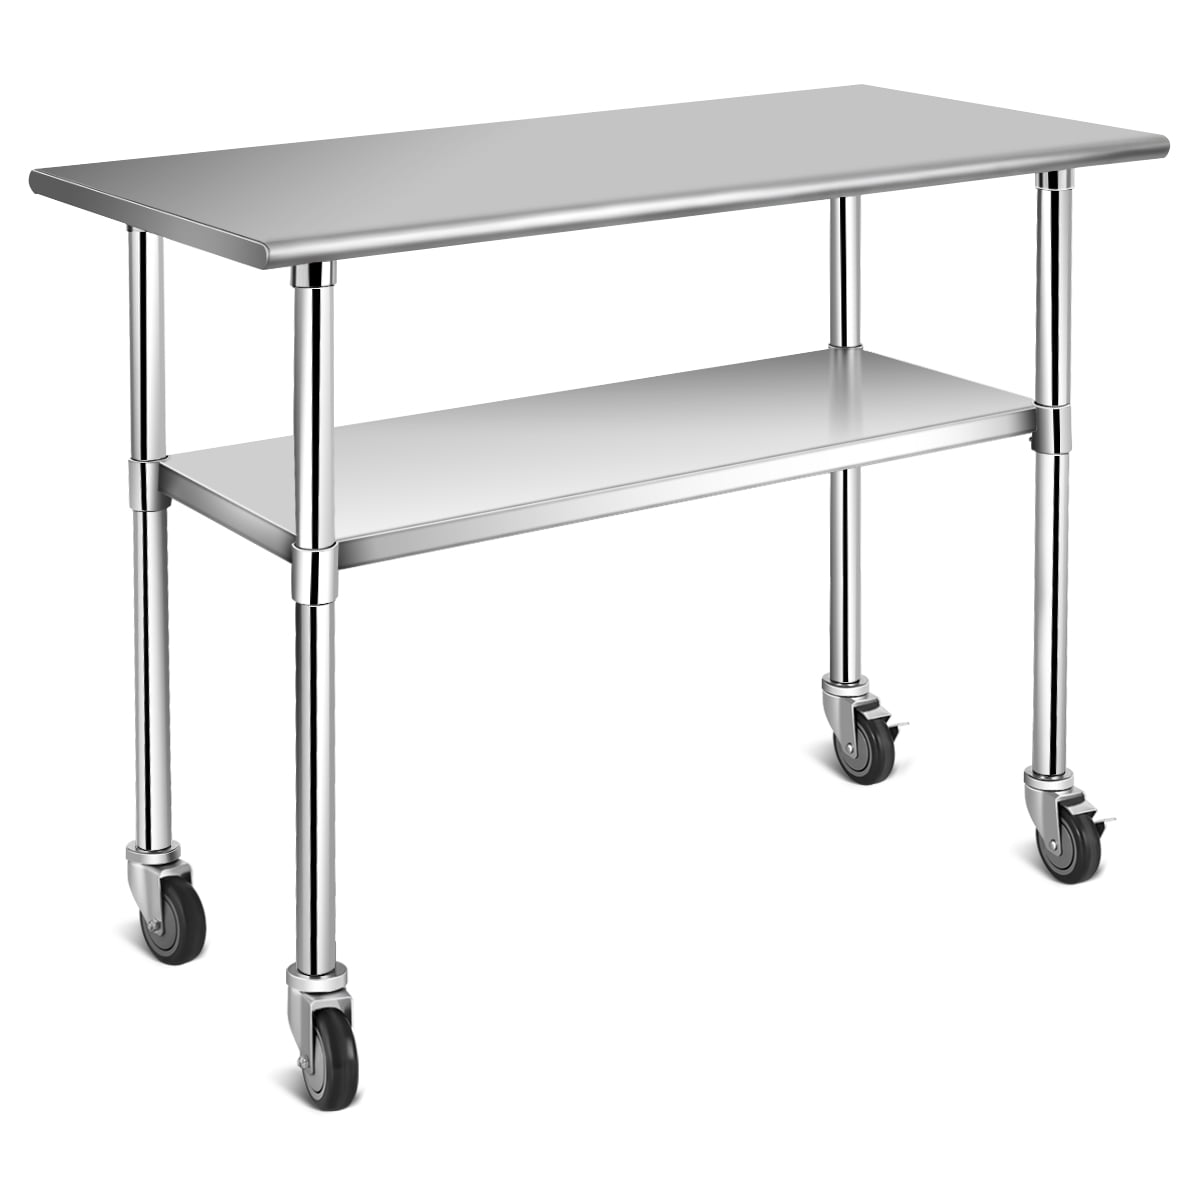 Topbuy Stainless Steel Mobile Kitchen Prep & Work Table ...